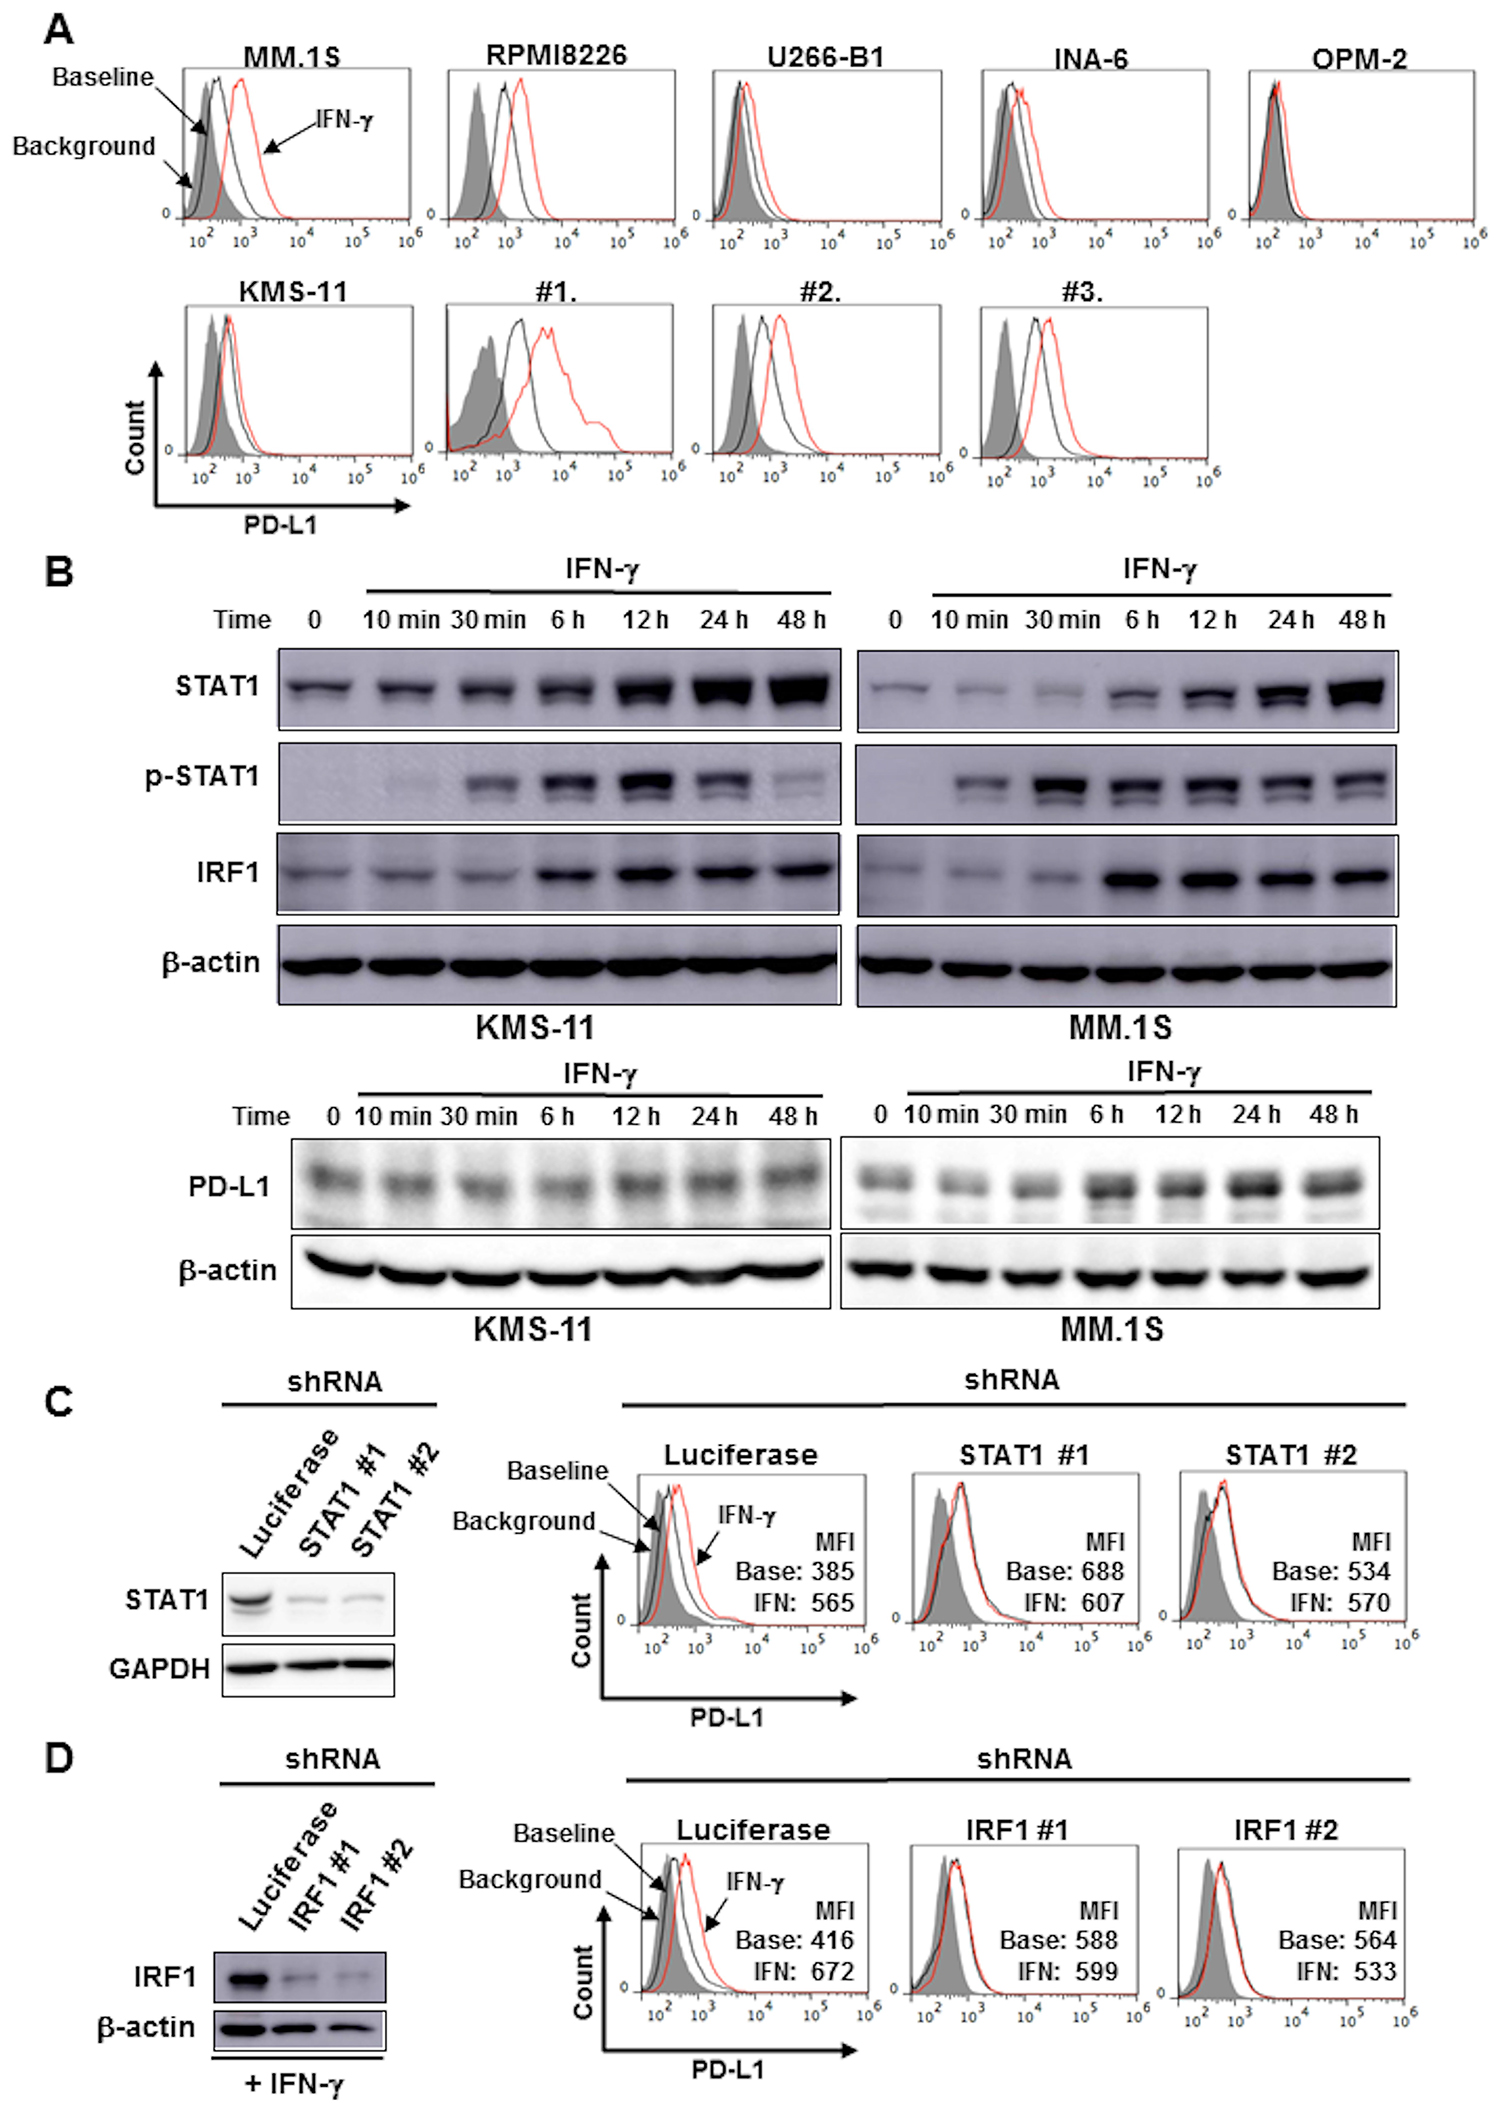 IFN-γ increased PD-L1 expression on MM cells via the STAT1-IRF1 signaling pathway.